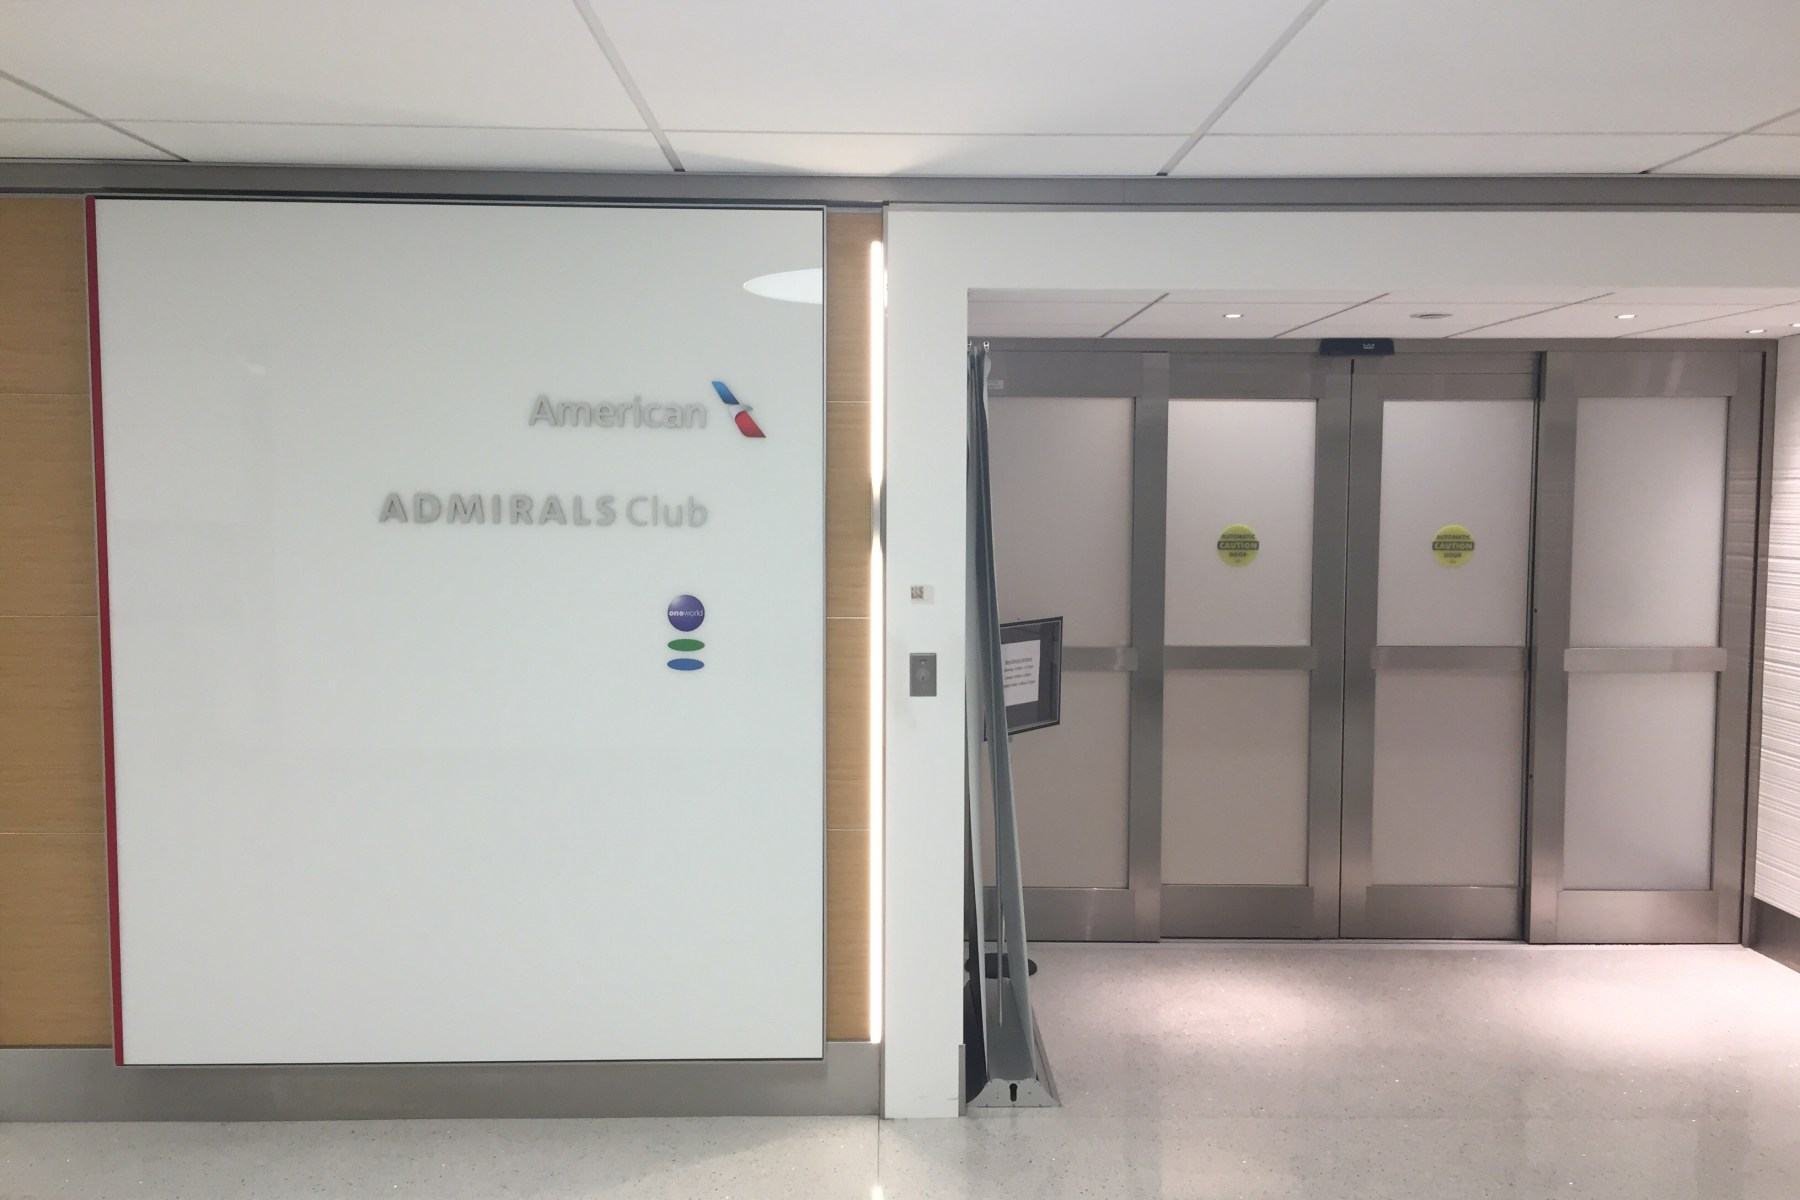 admiral club stl american airlines